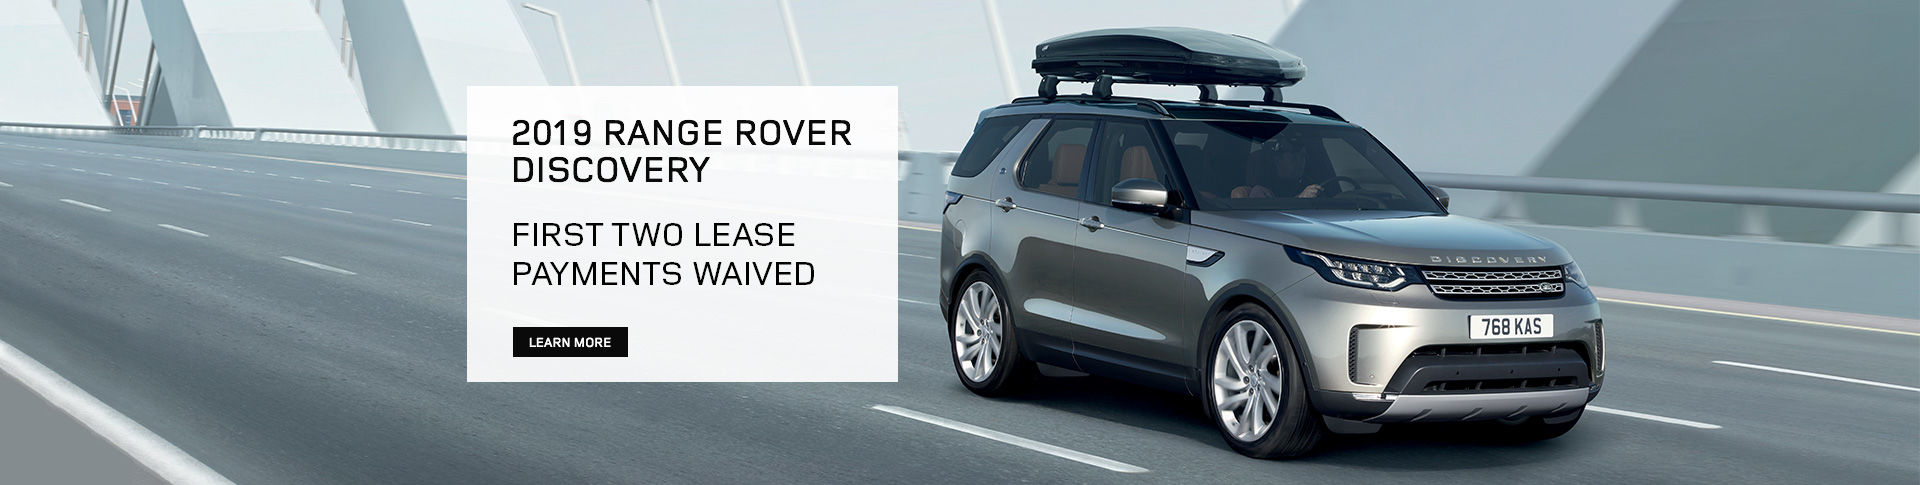 2019 Range Rover Discovery - First Two Lease Payments Waived